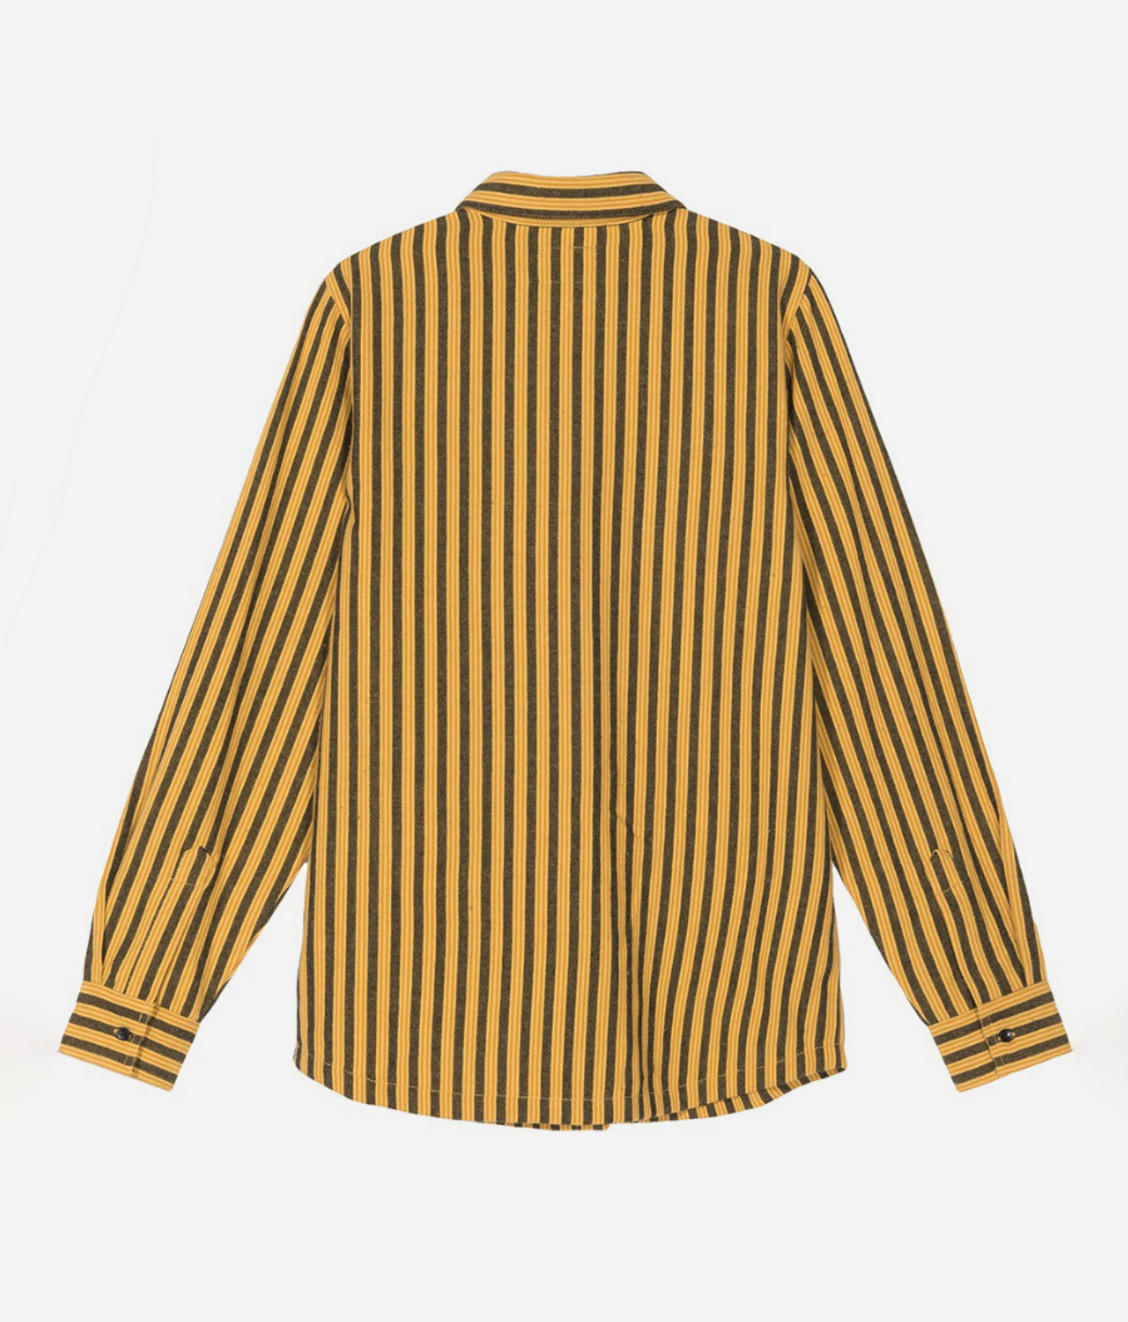 Stussy Stussy Piper Stripe Ls Shirt Gold